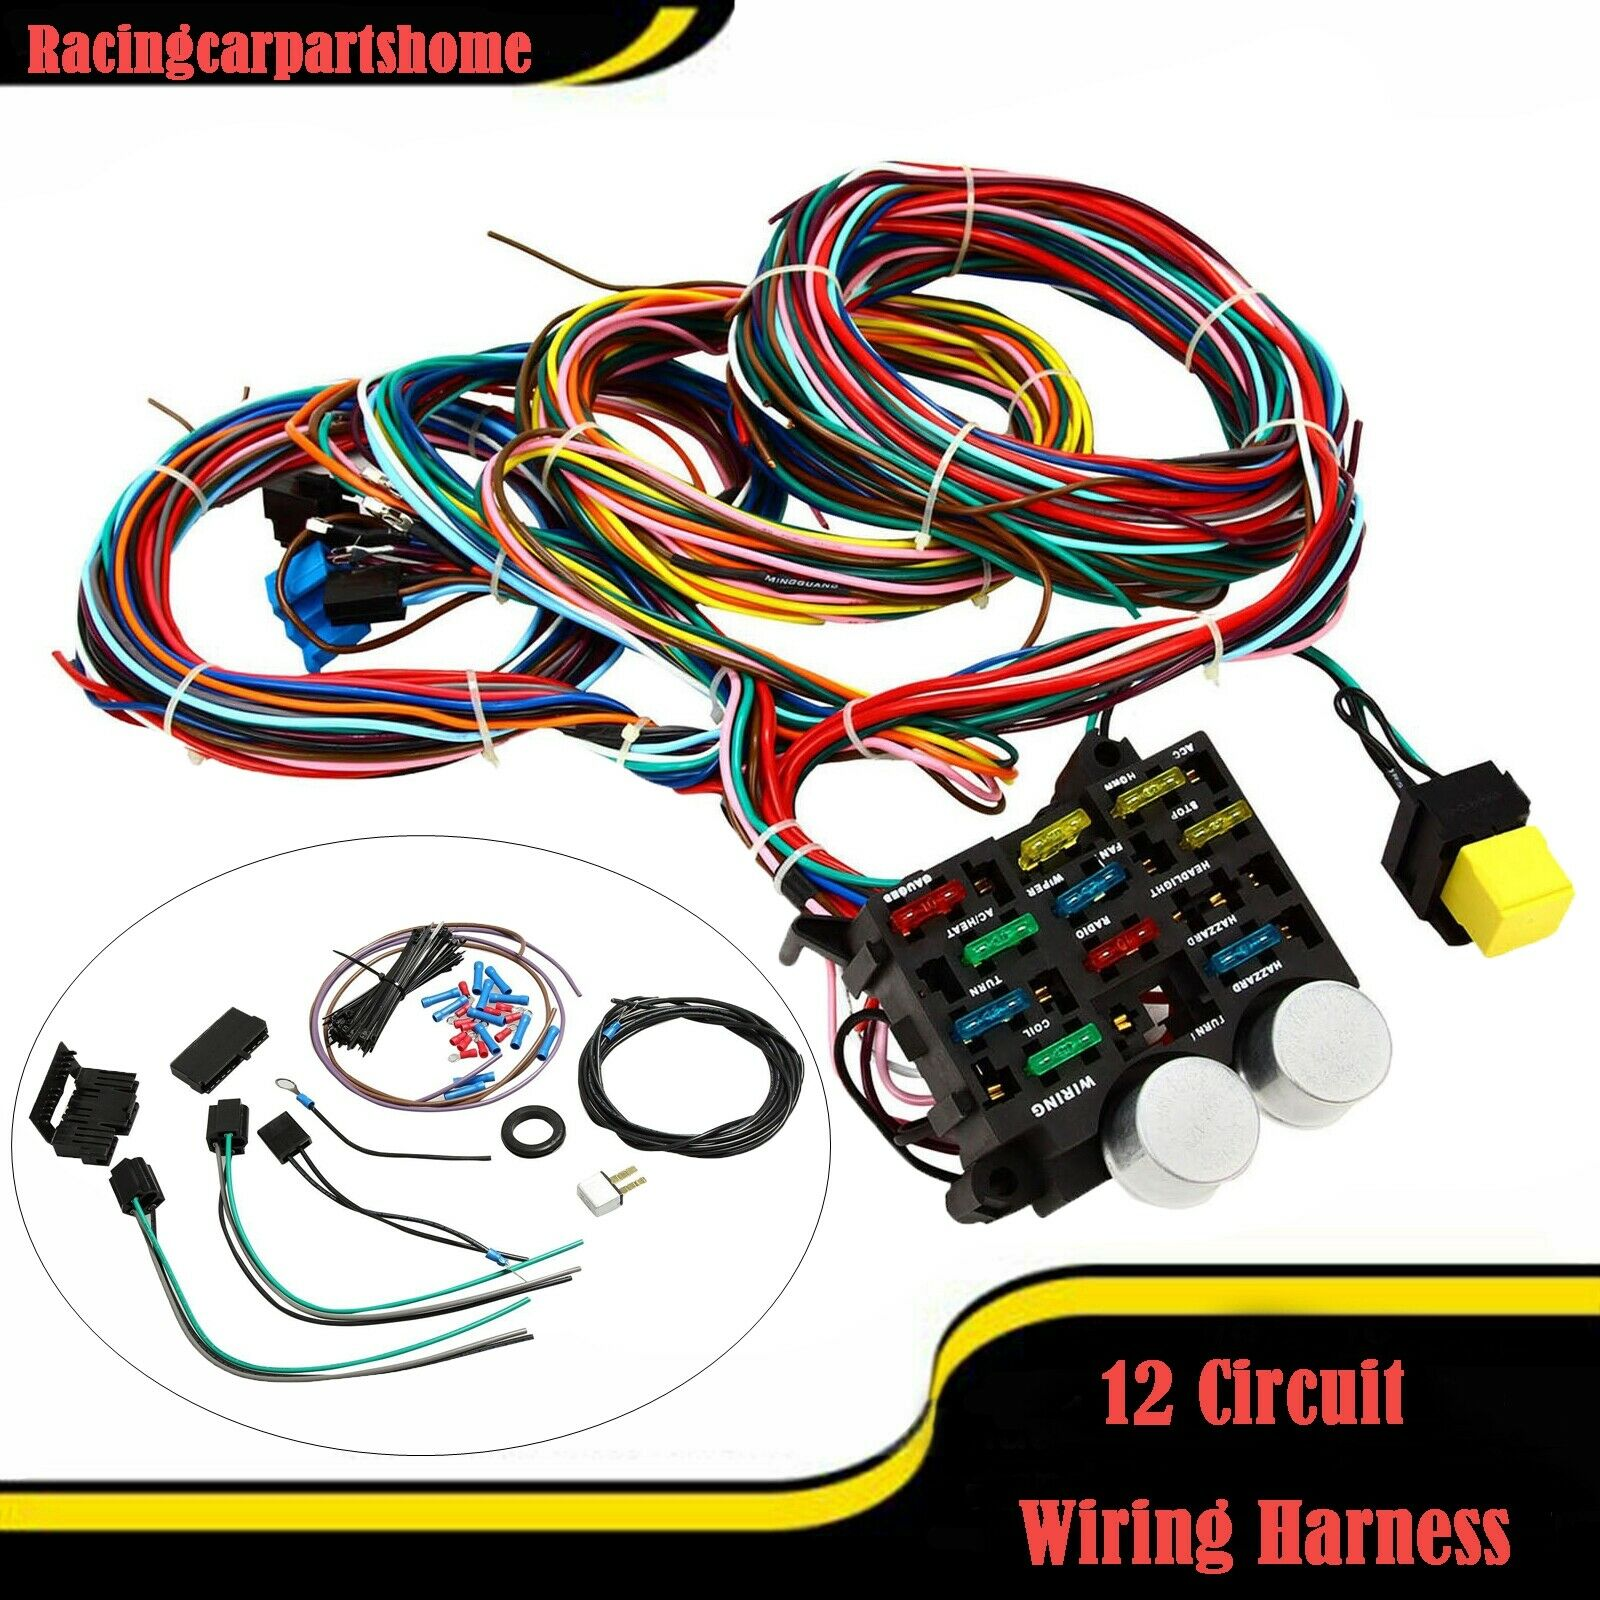 Universal Wire 12 Circuit Hot Rod Wiring Harness For Chevy Mopar Ford Street  1 of 7FREE Shipping ...